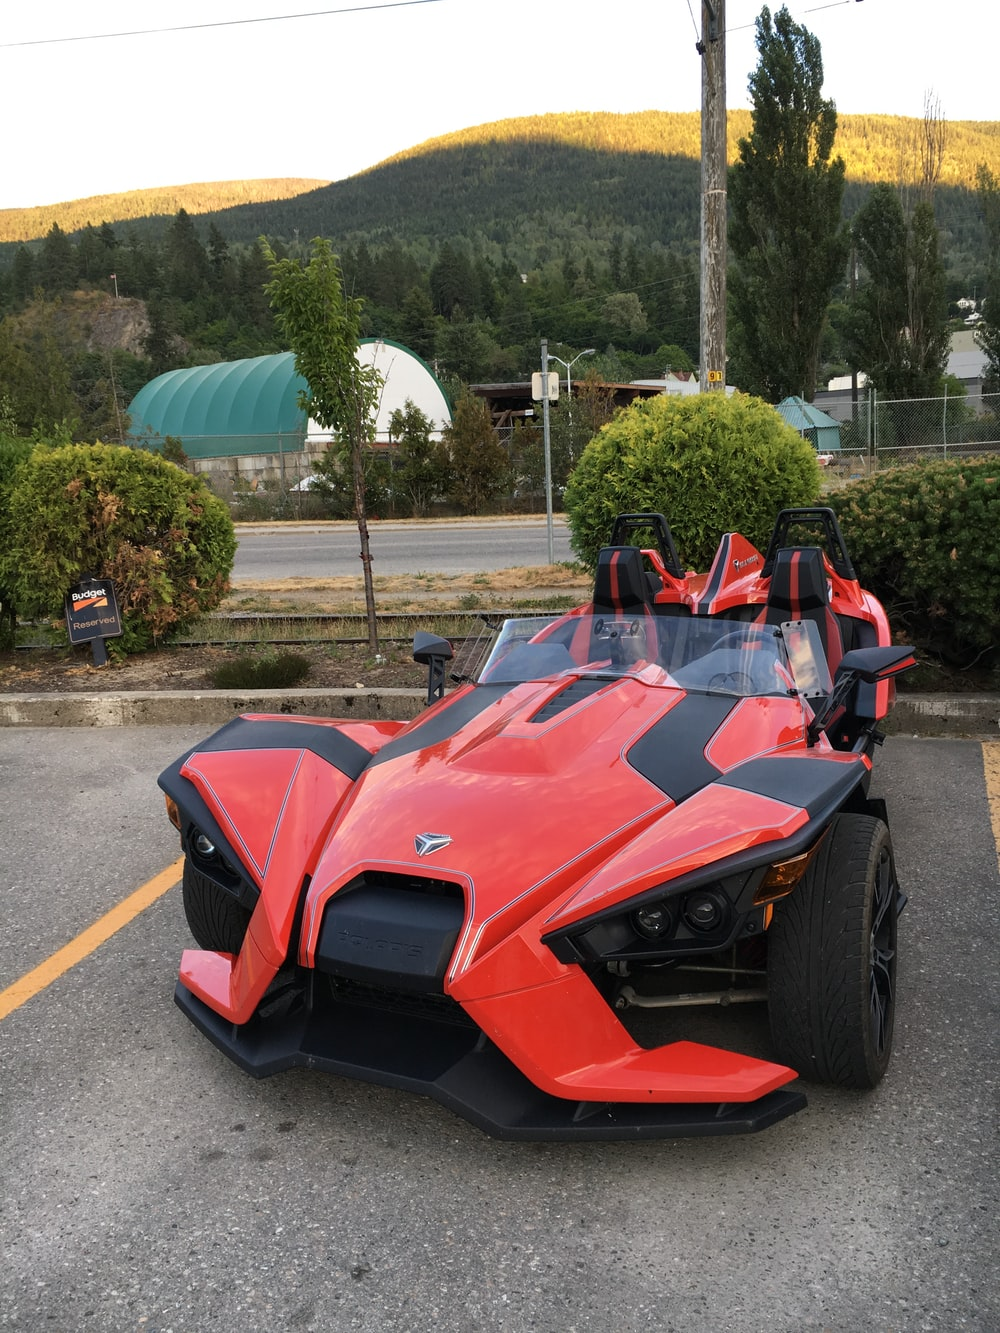 red and black lamborghini aventador on road during daytime